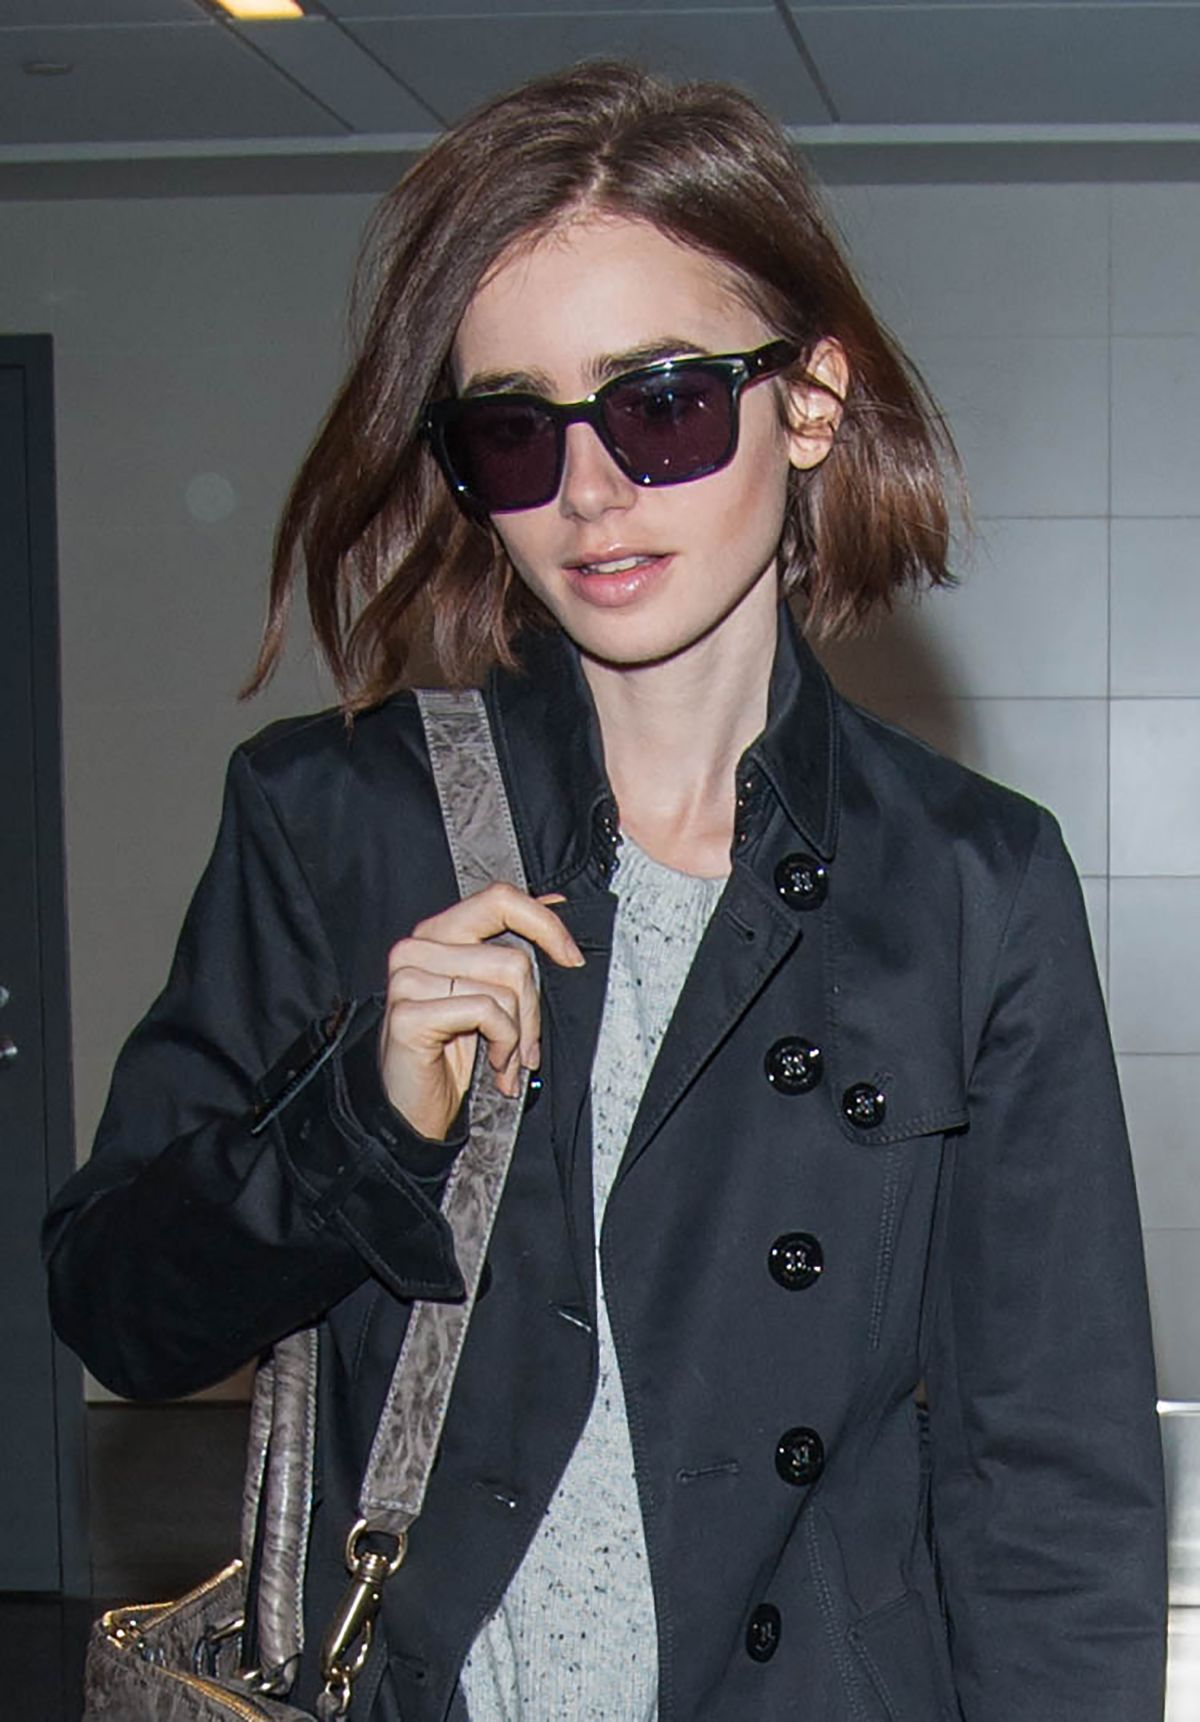 LILY COLLINS at LAX Airport in Los Angeles 04/30/2016